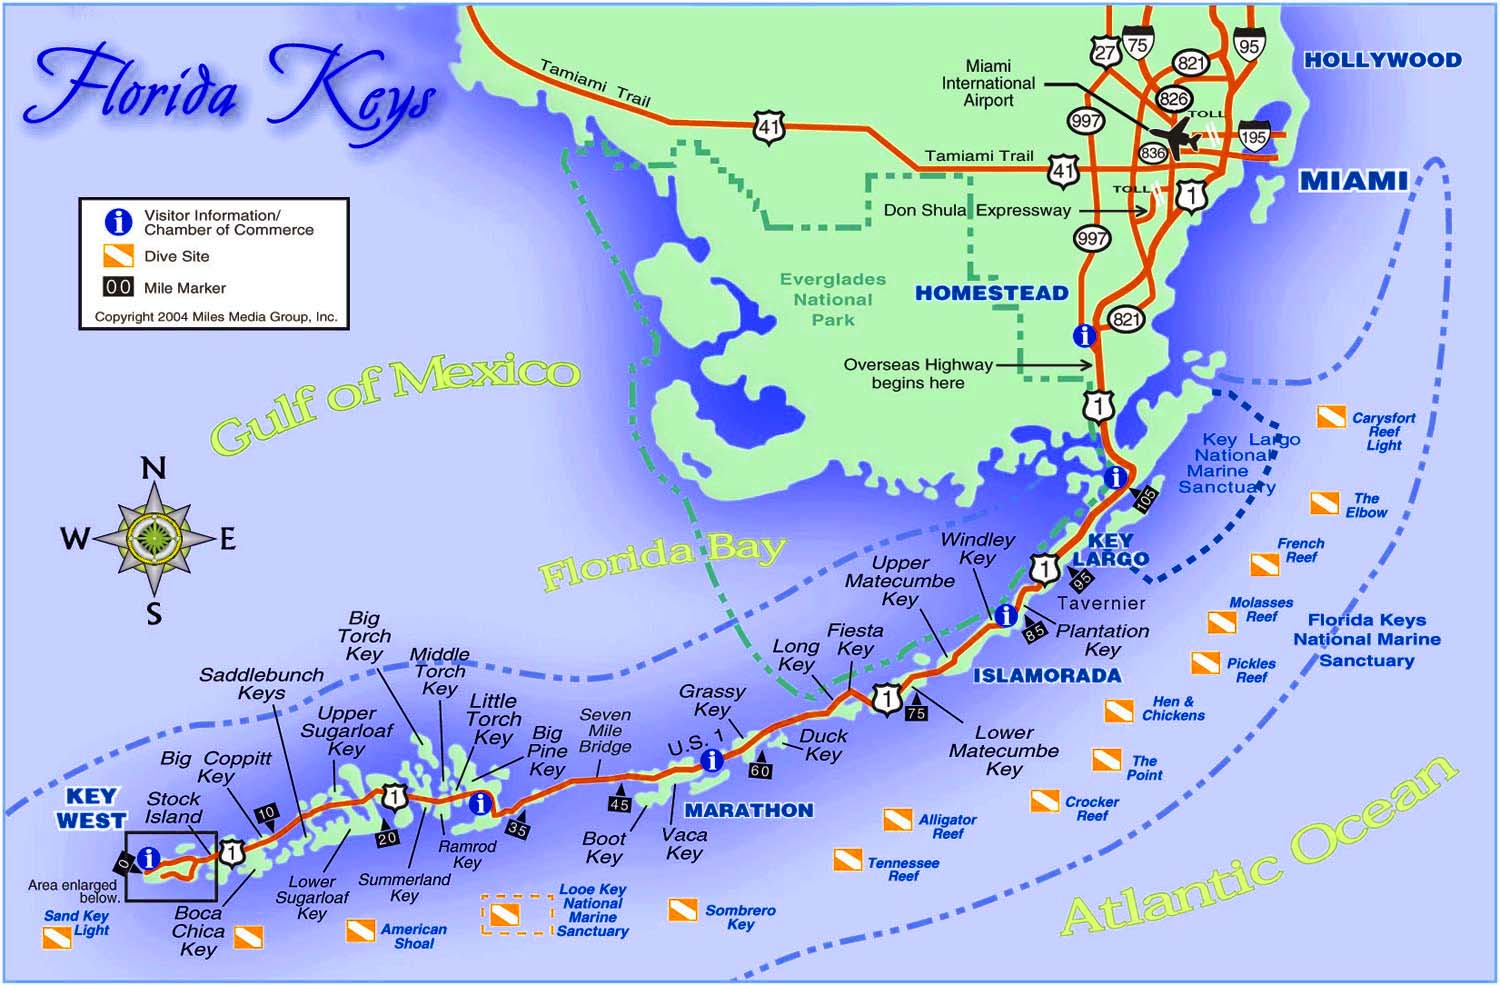 Map Of Florida Keys And Miami.Best Florida Keys Beaches Map And Information Florida Keys